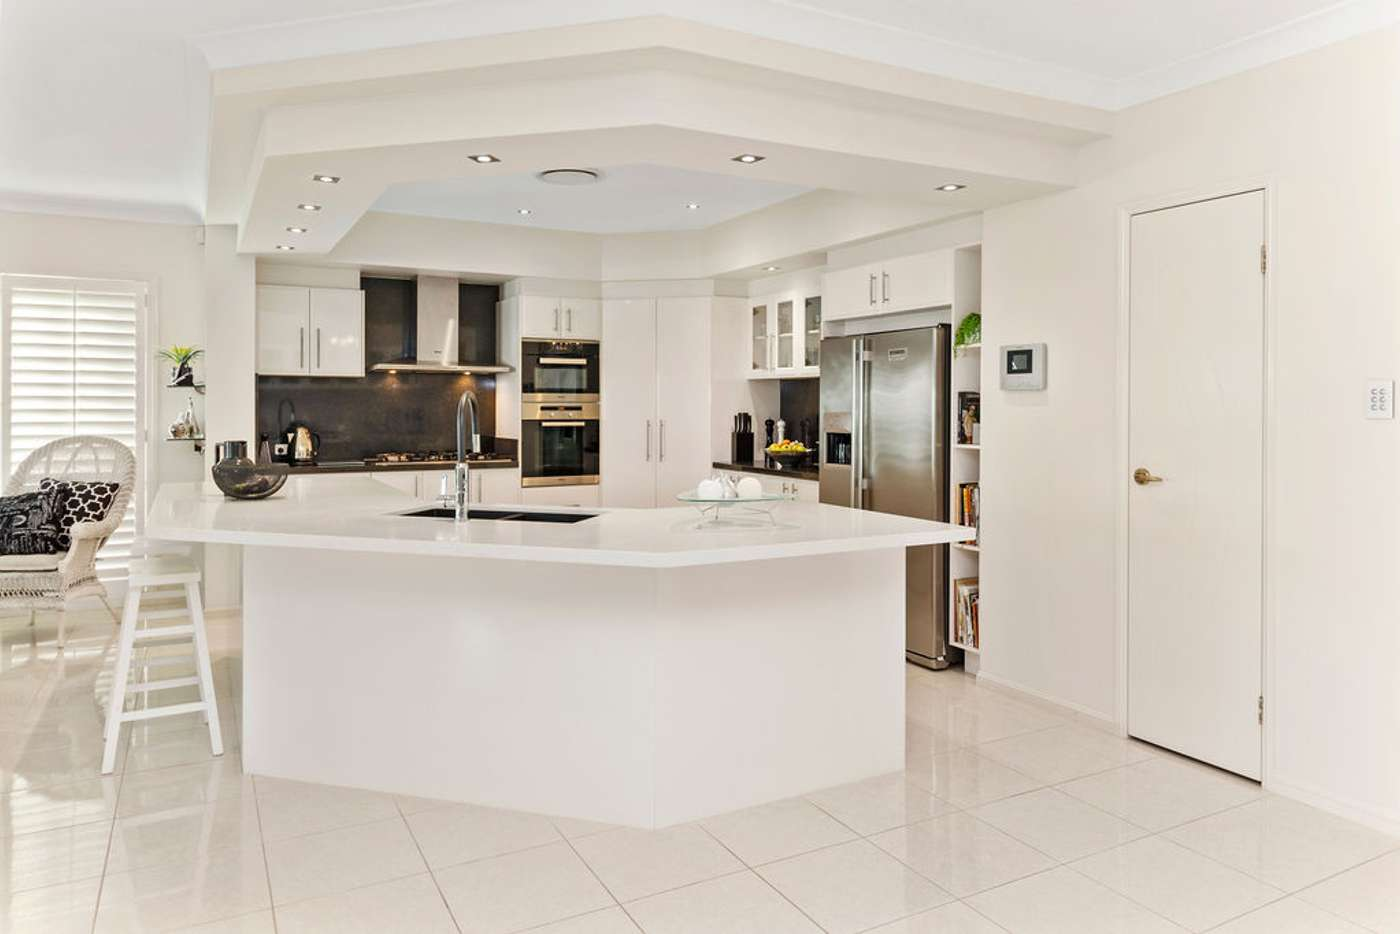 Sixth view of Homely house listing, 47 KNIGHTSBRIDGE PARADE EAST, Sovereign Islands QLD 4216